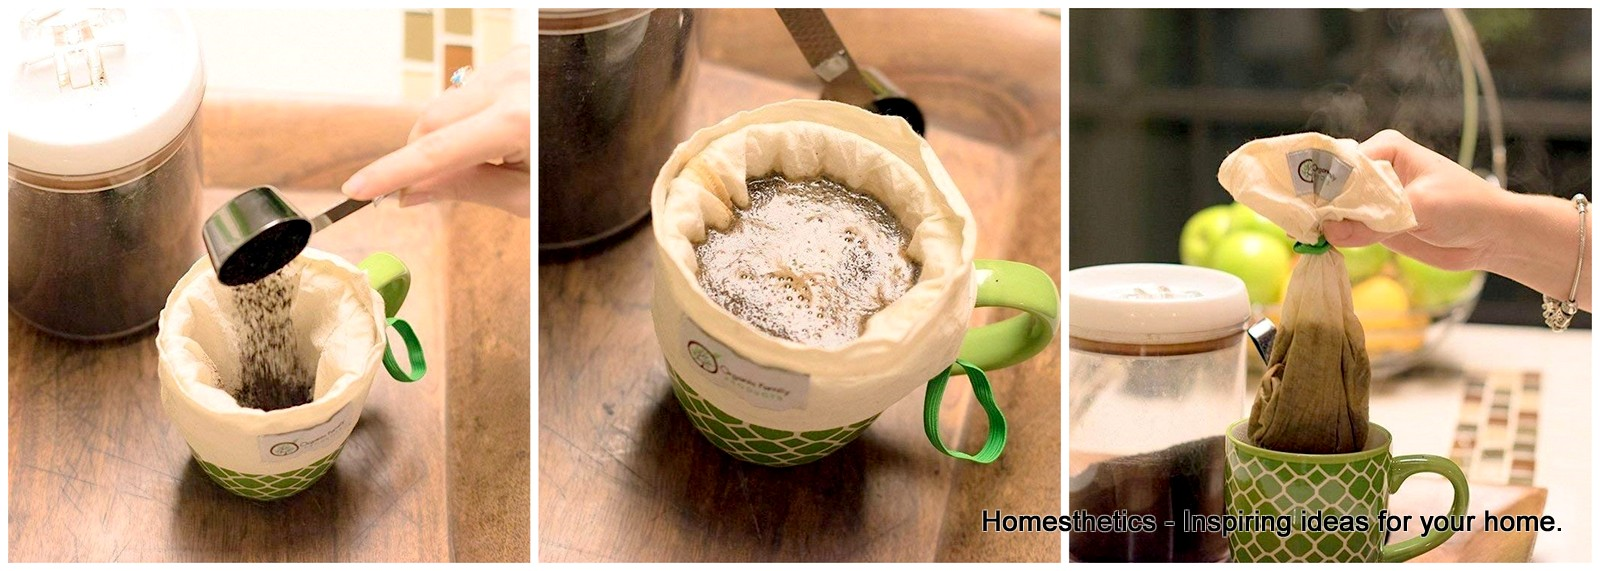 Learn How to Clean a Nut Milk Bag